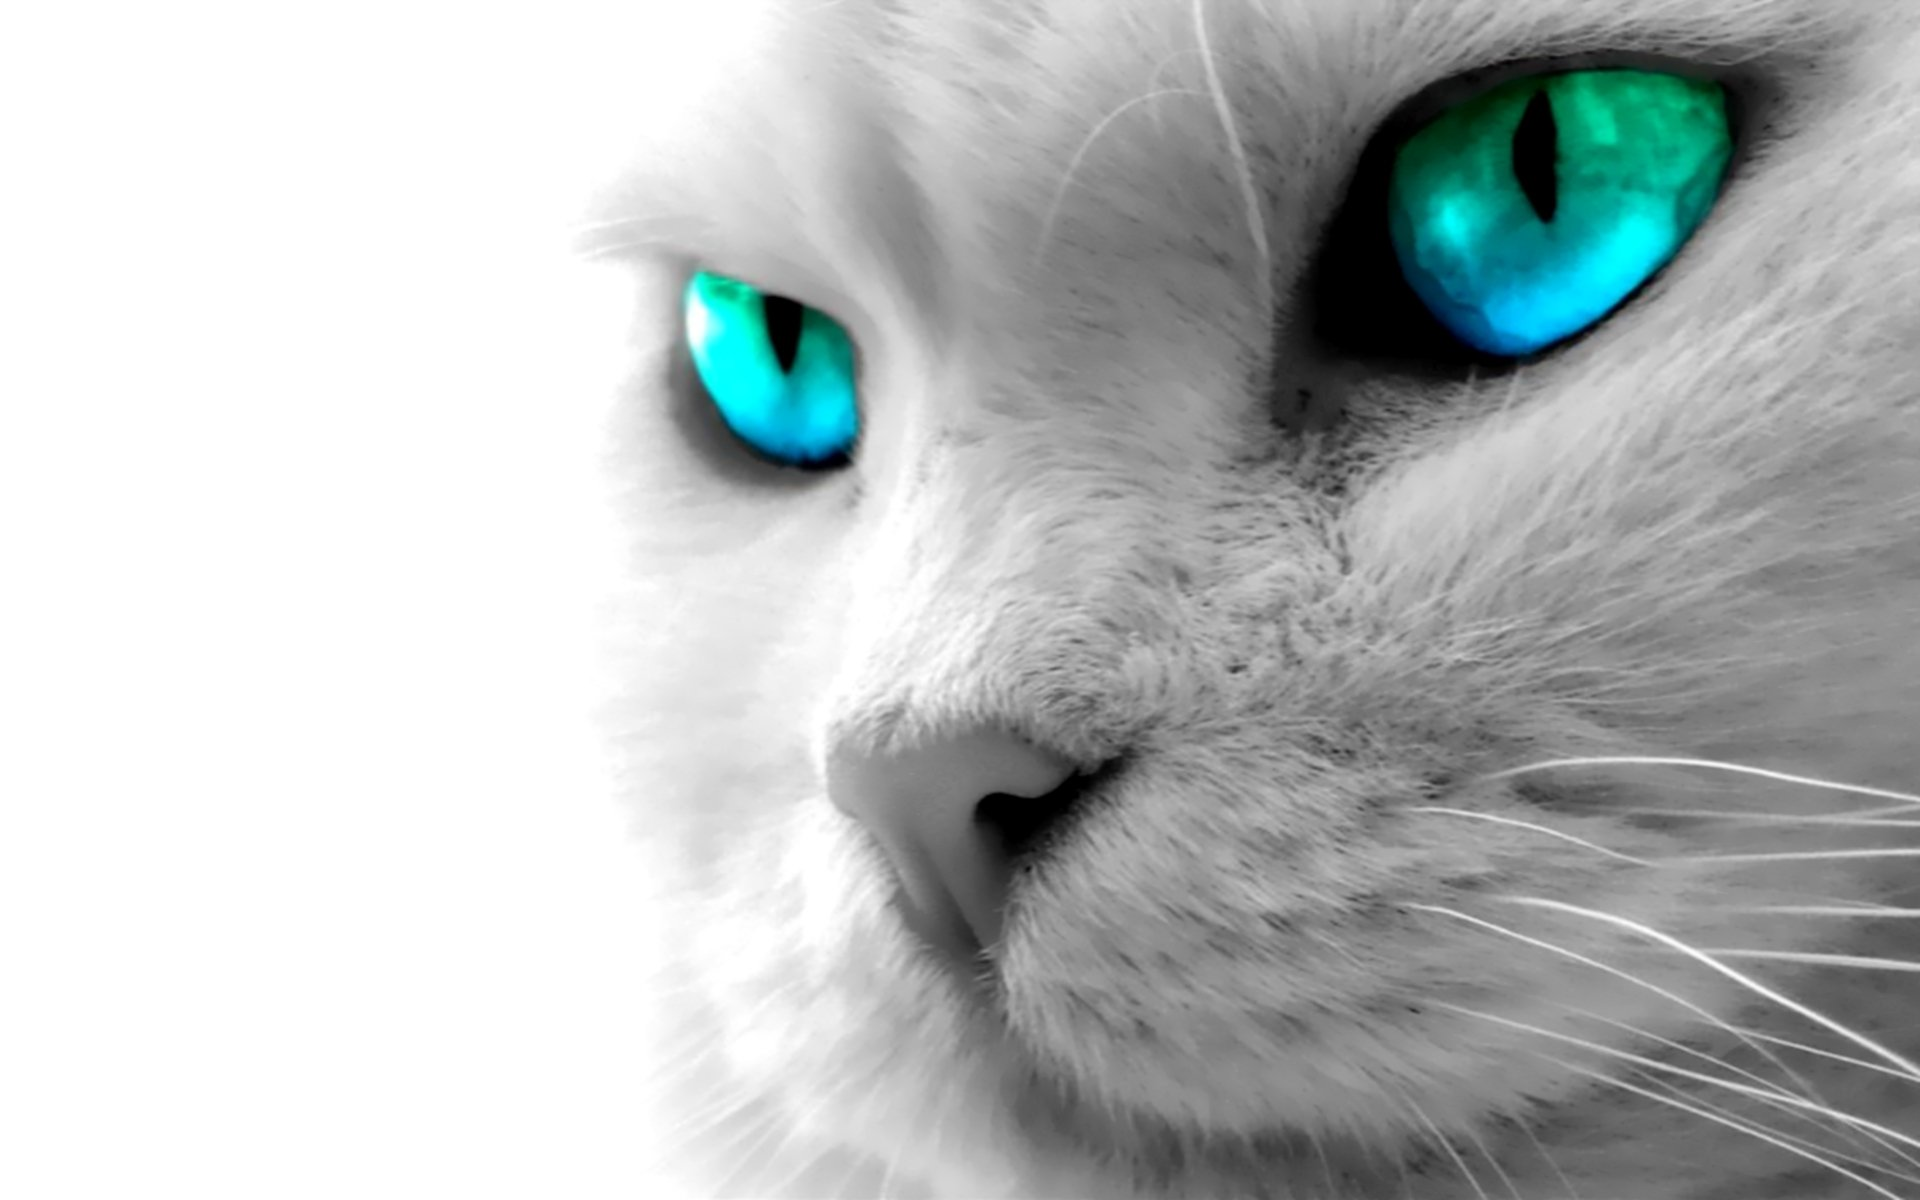 Animal - Cat  Pet Animal Wallpaper